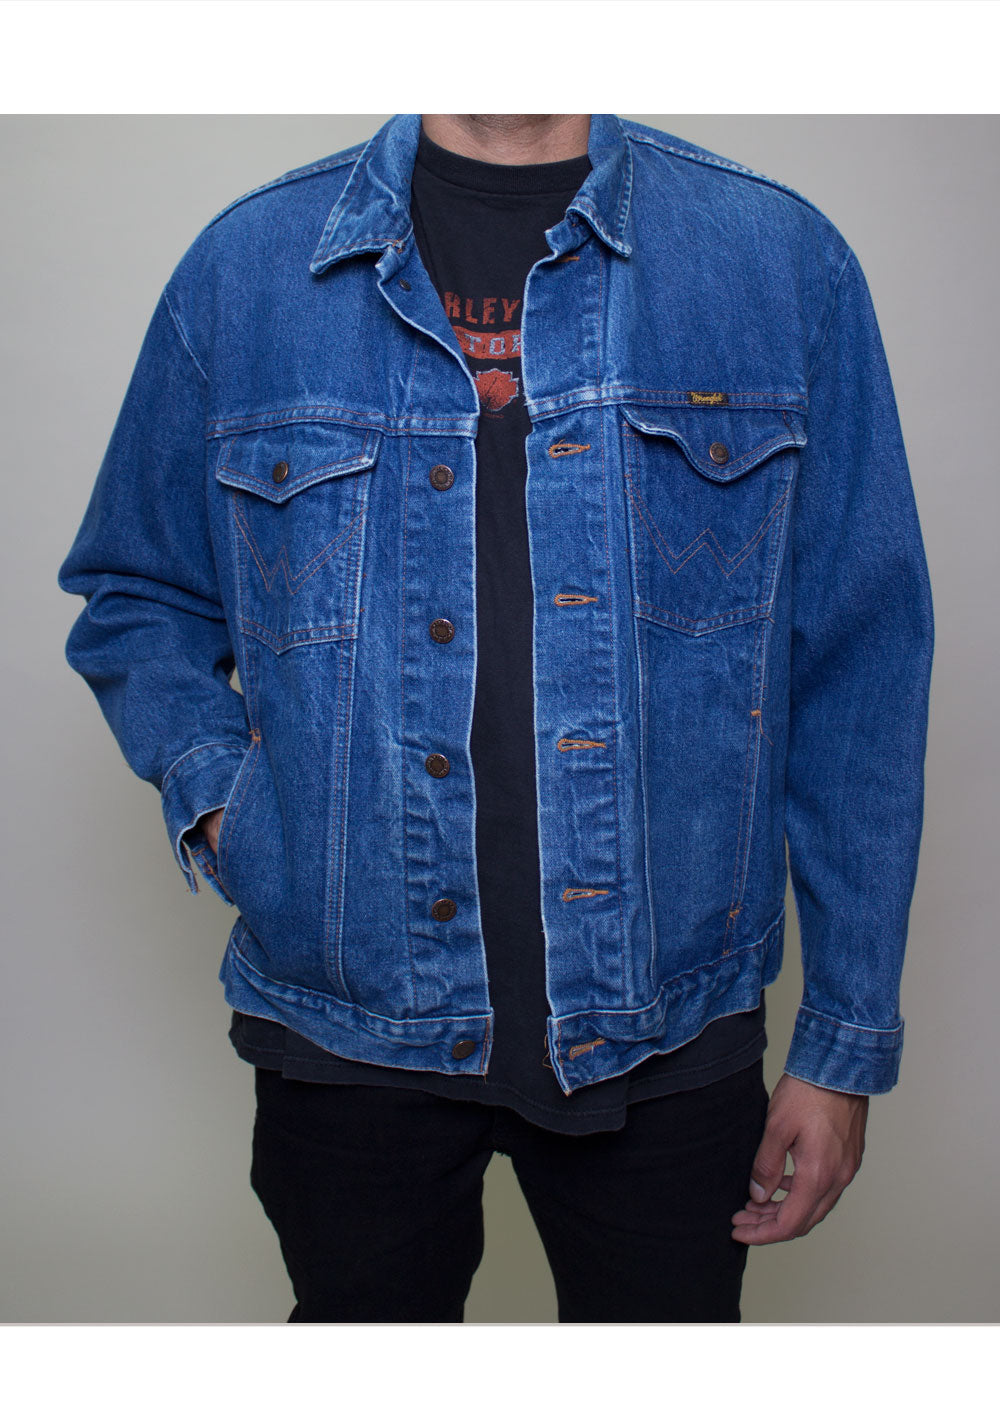 Classic Blue Wrangler Denim Jacket